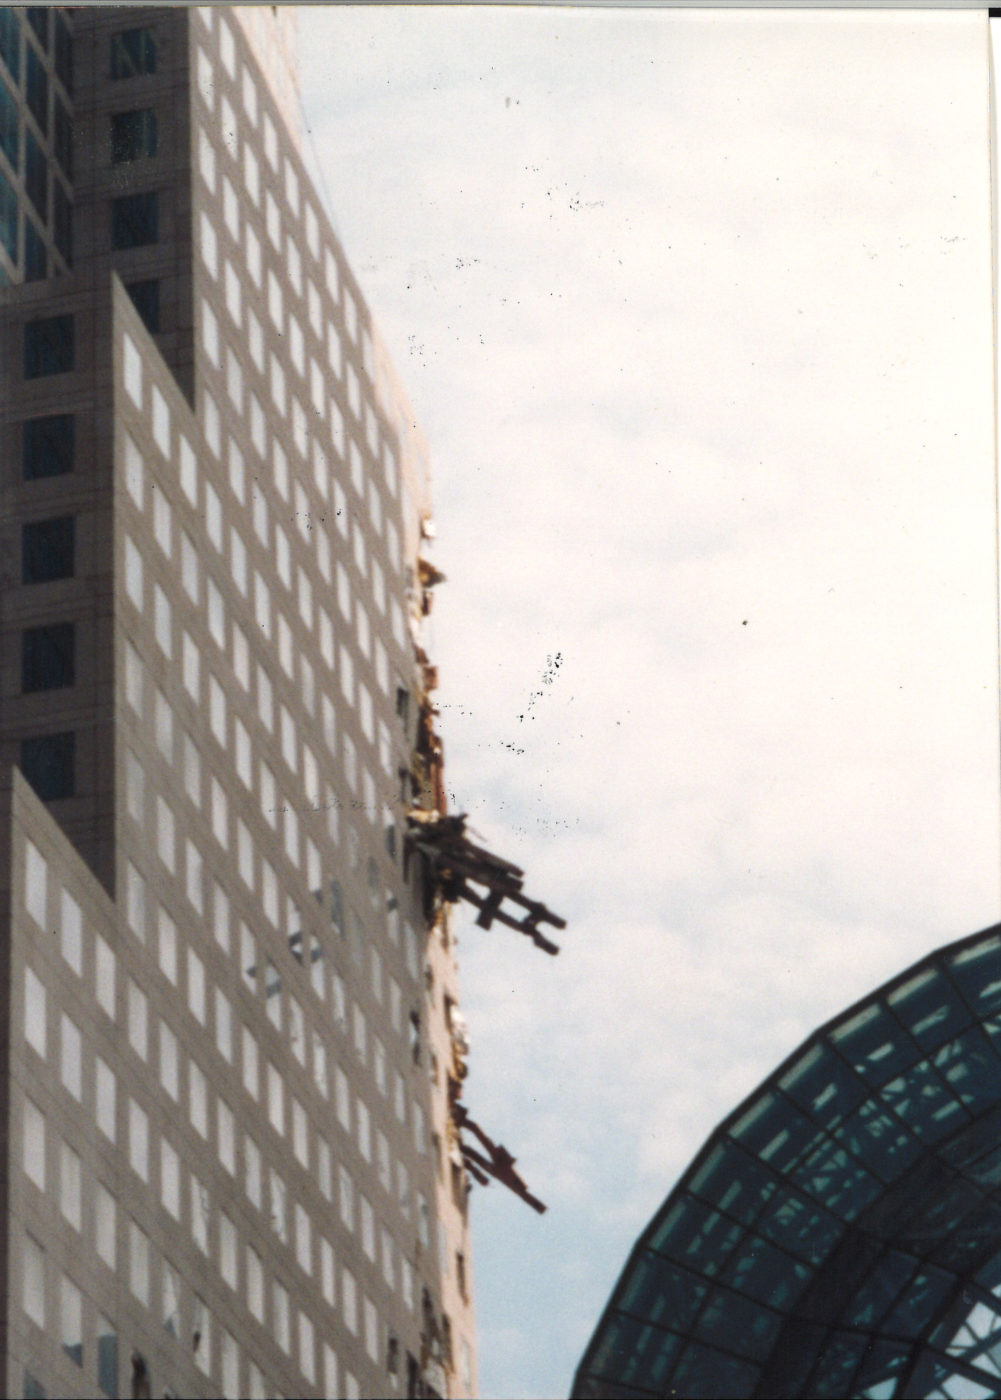 200 Vesey with embedded pieces of the WTC